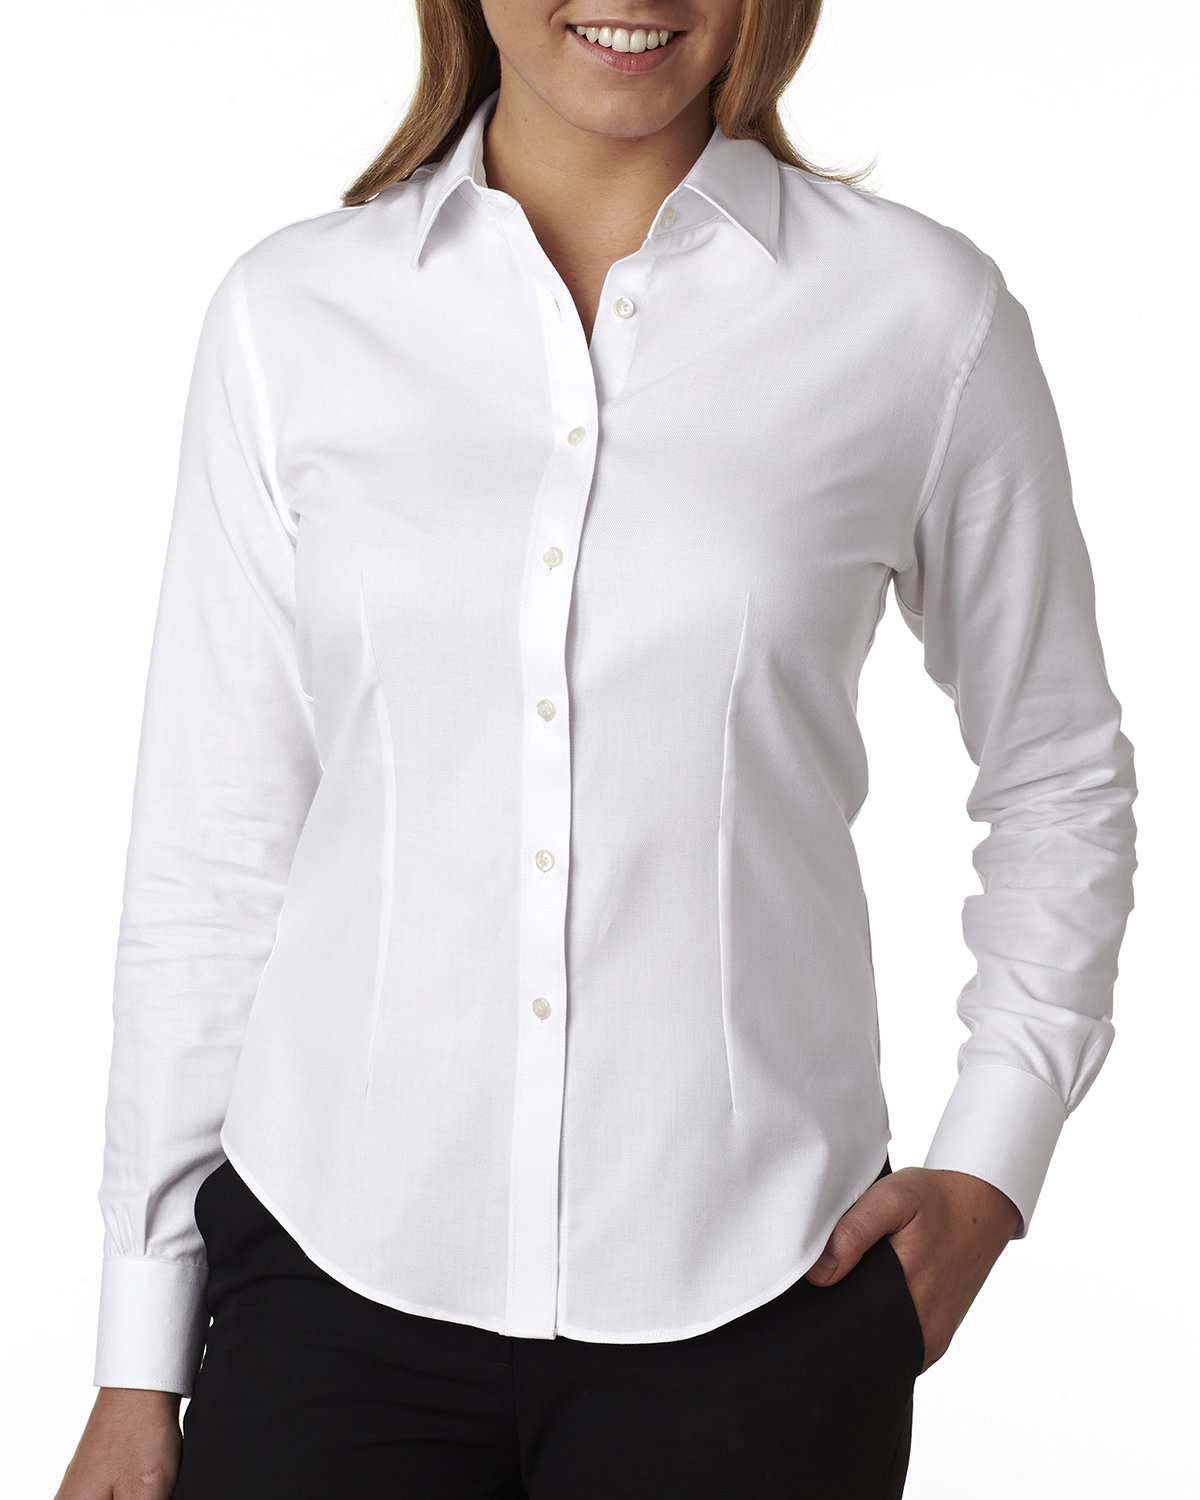 Van Heusen V0397 - Ladies' Long-Sleeve Ring-Spun Performance ...